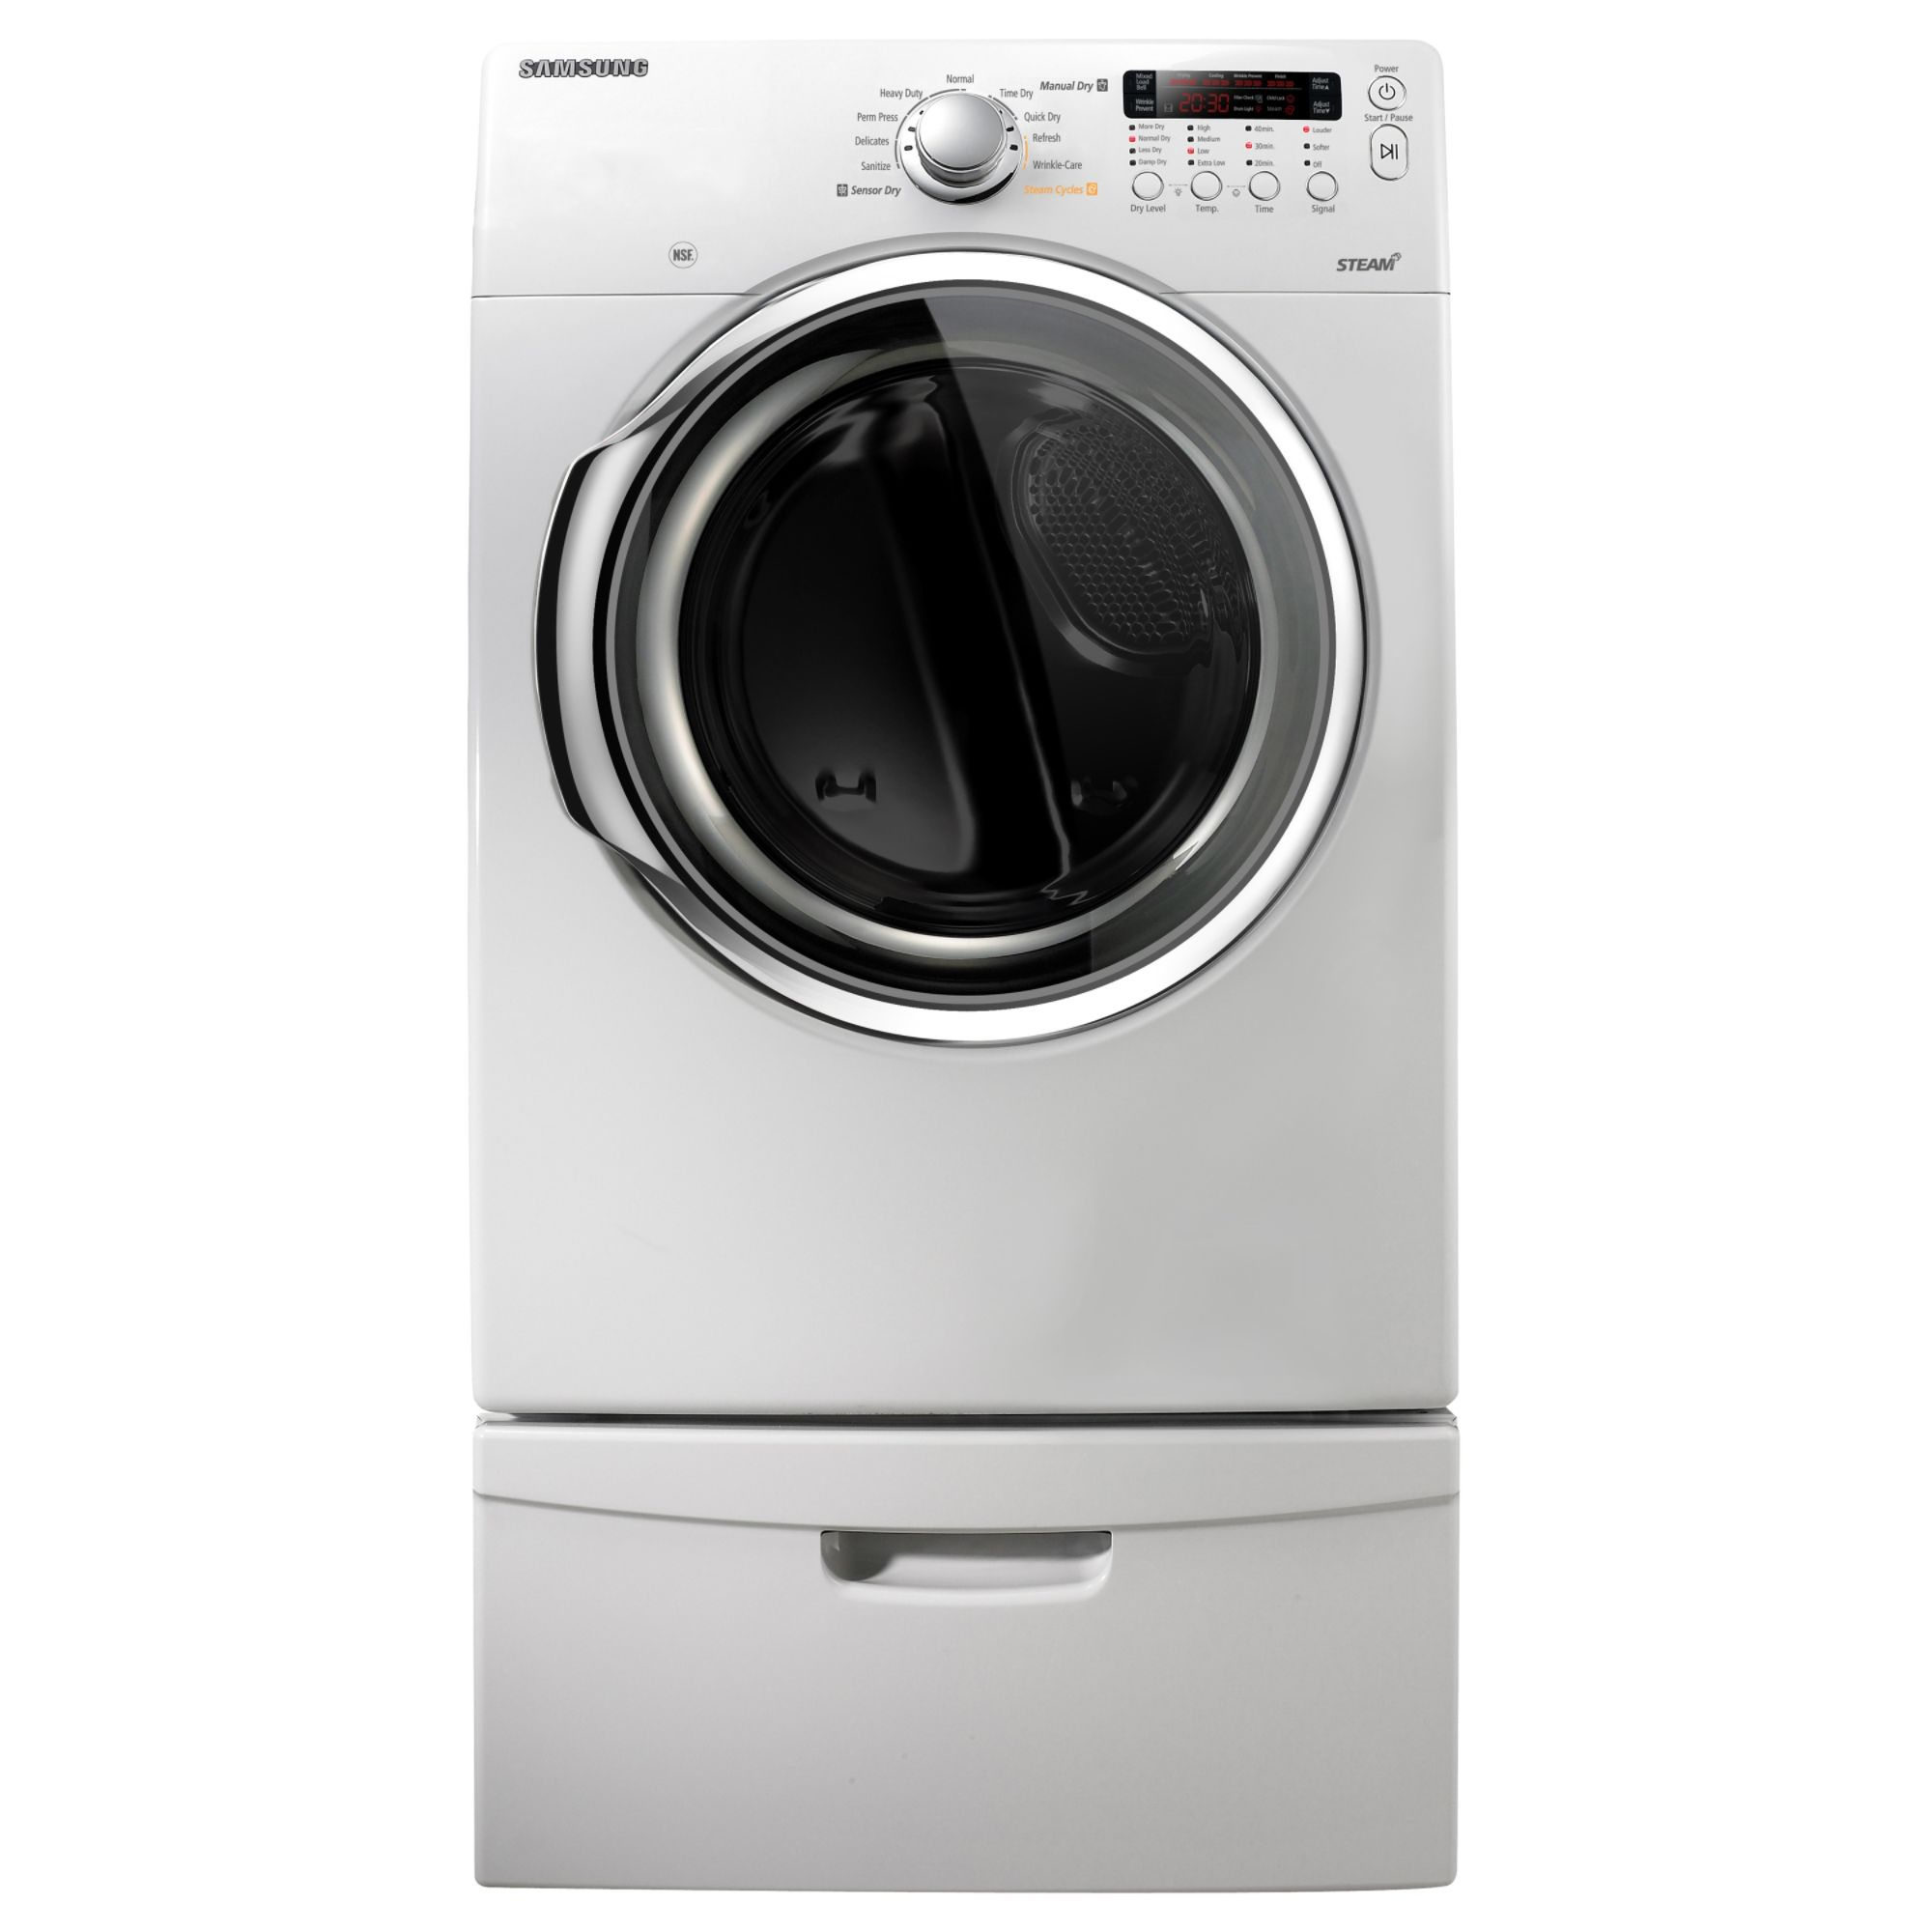 Samsung 7.3 cu. ft. Electric Steam Dryer White